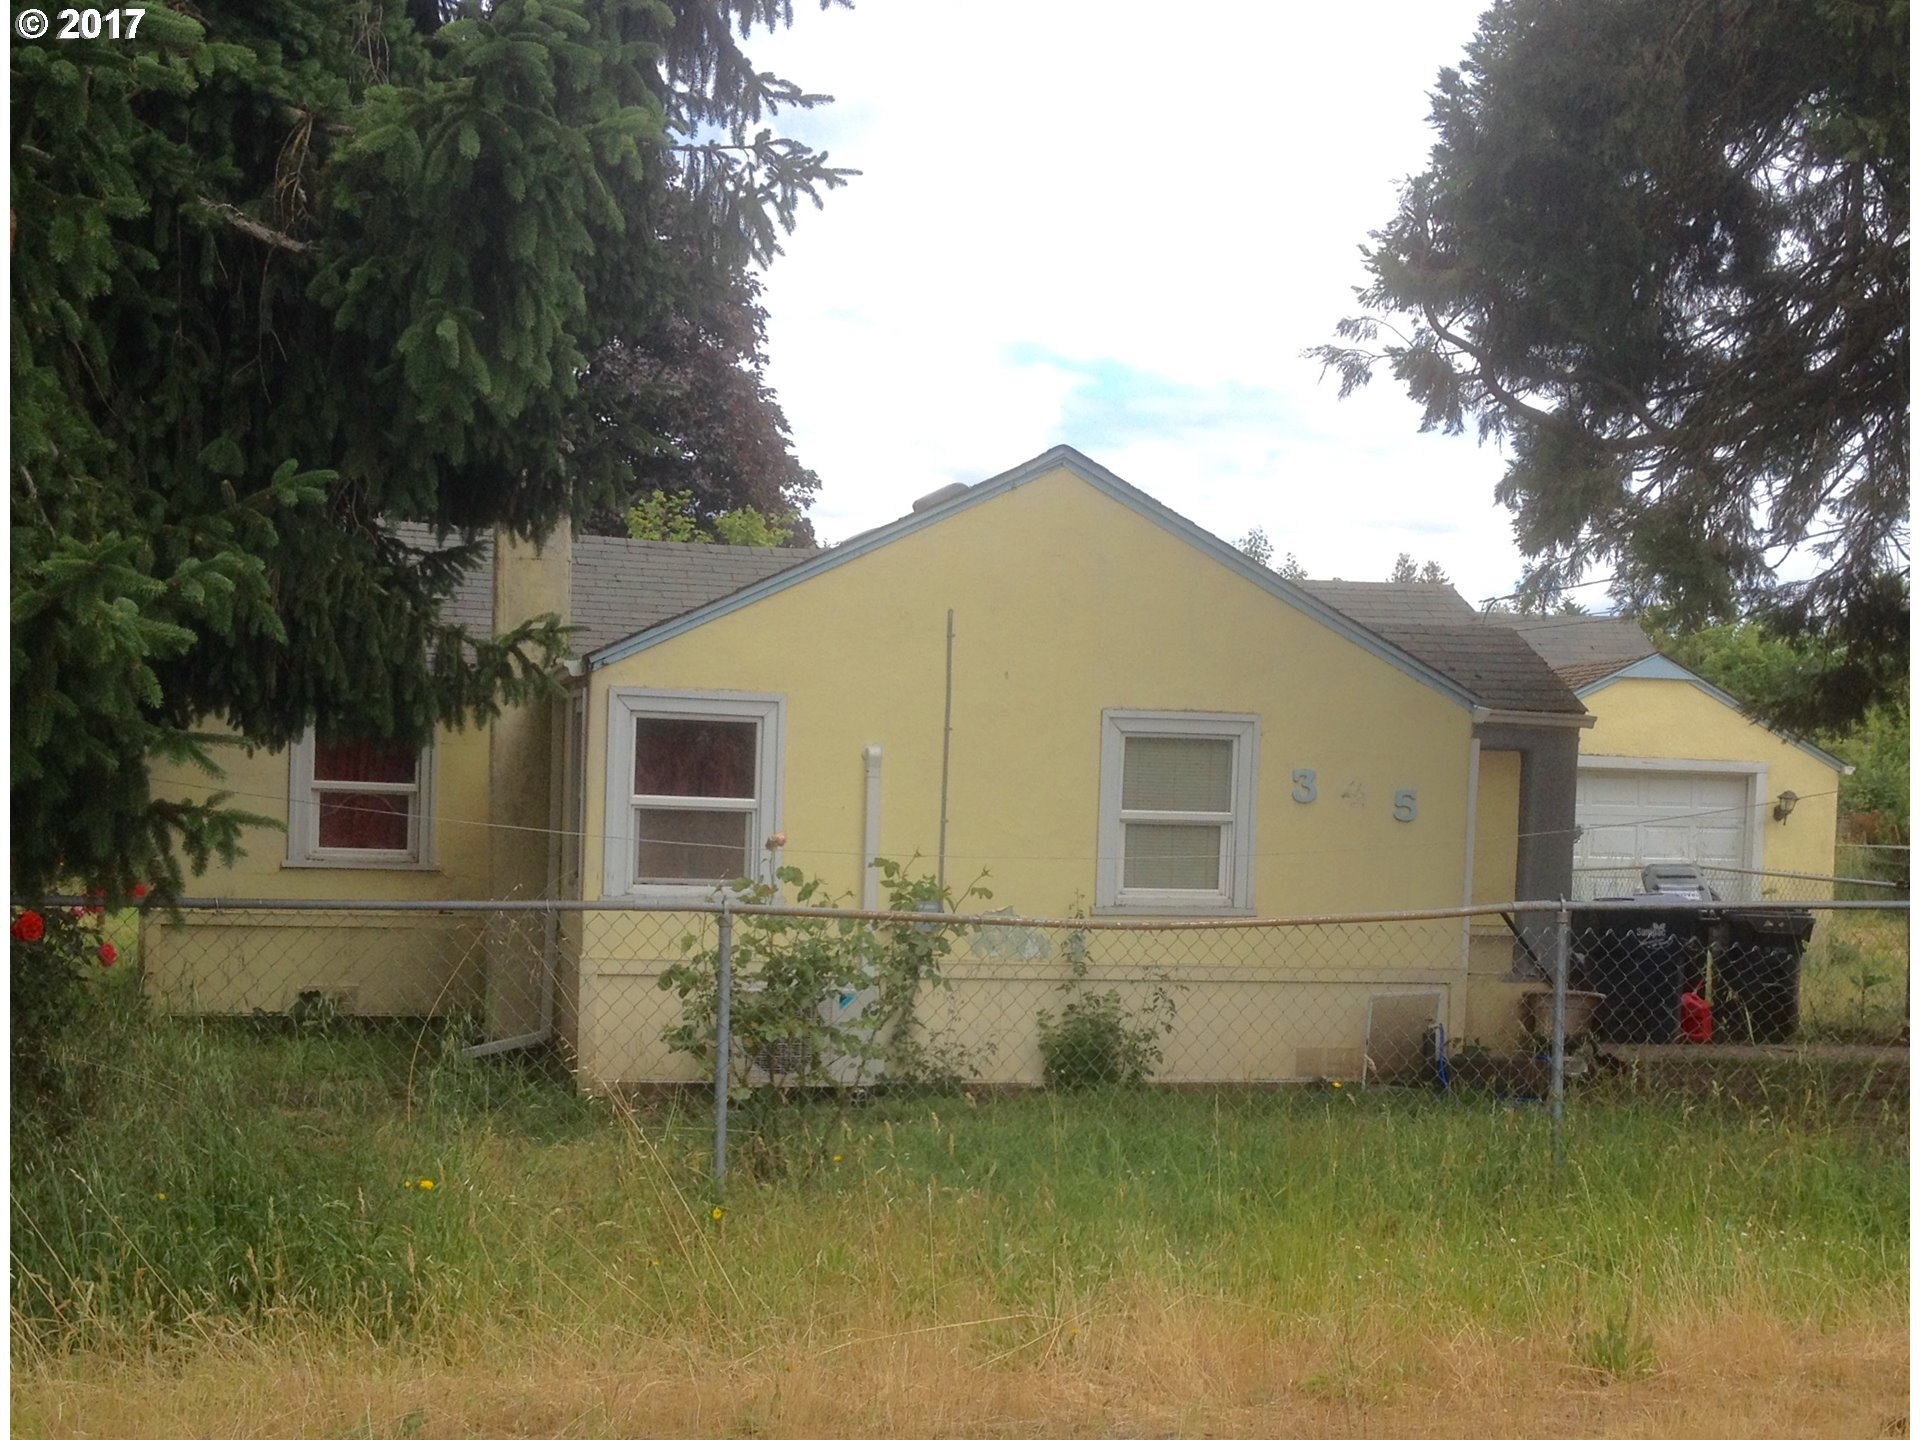 345 S 38TH ST, Springfield, OR 97478